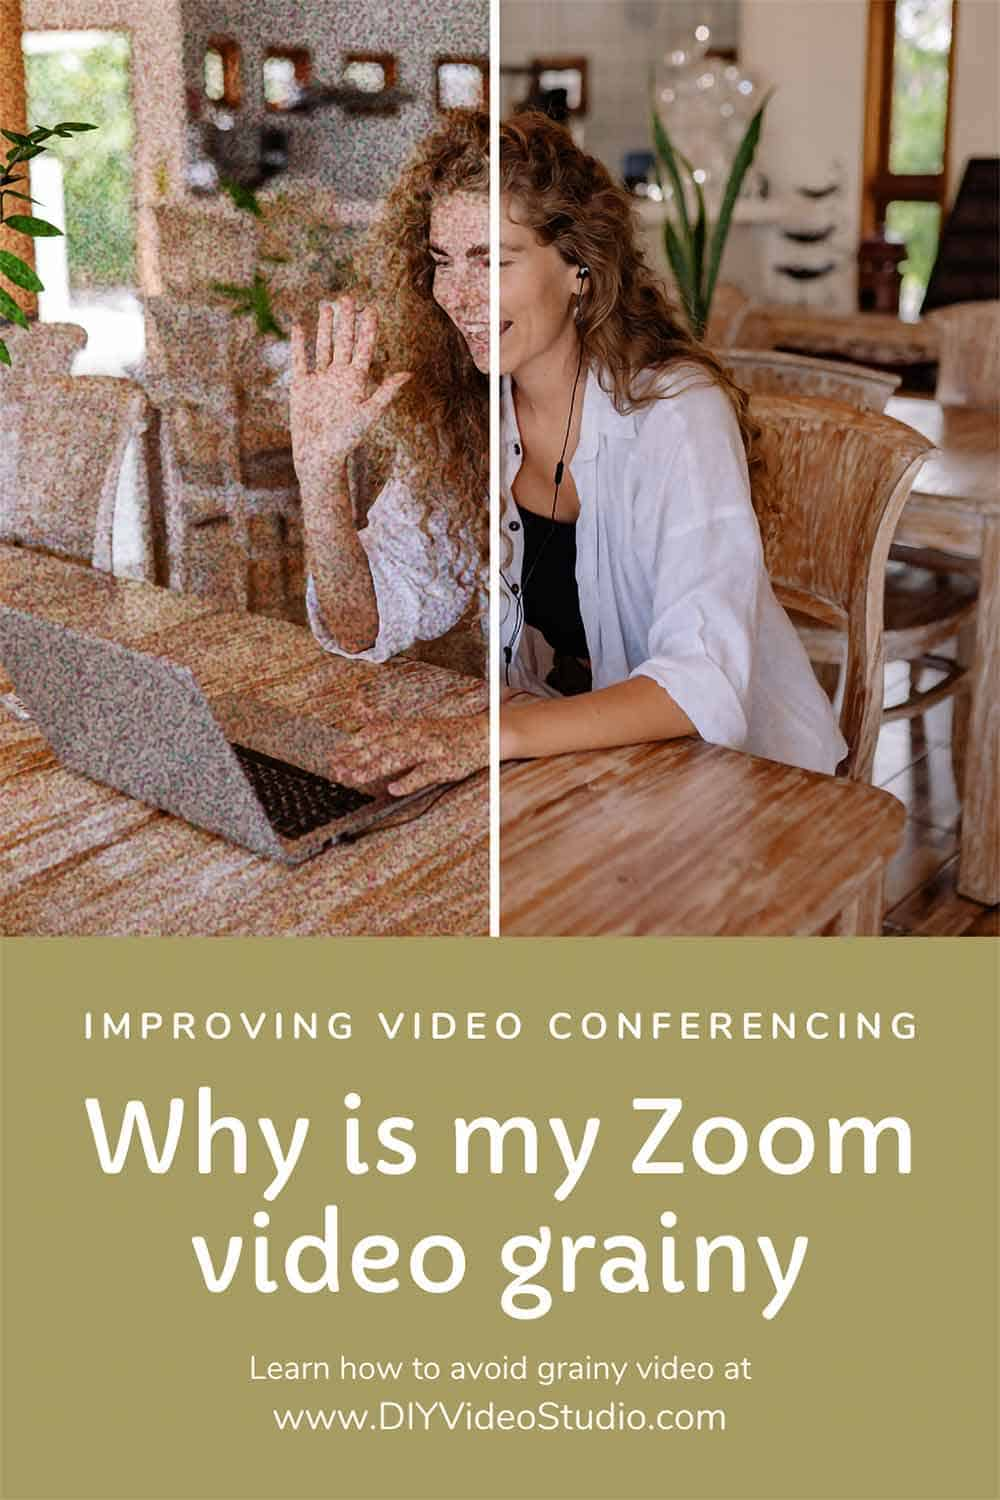 Why-is-my-Zoom-video-grainy-and-how-to-avoid-it-Pinterest-Graphic